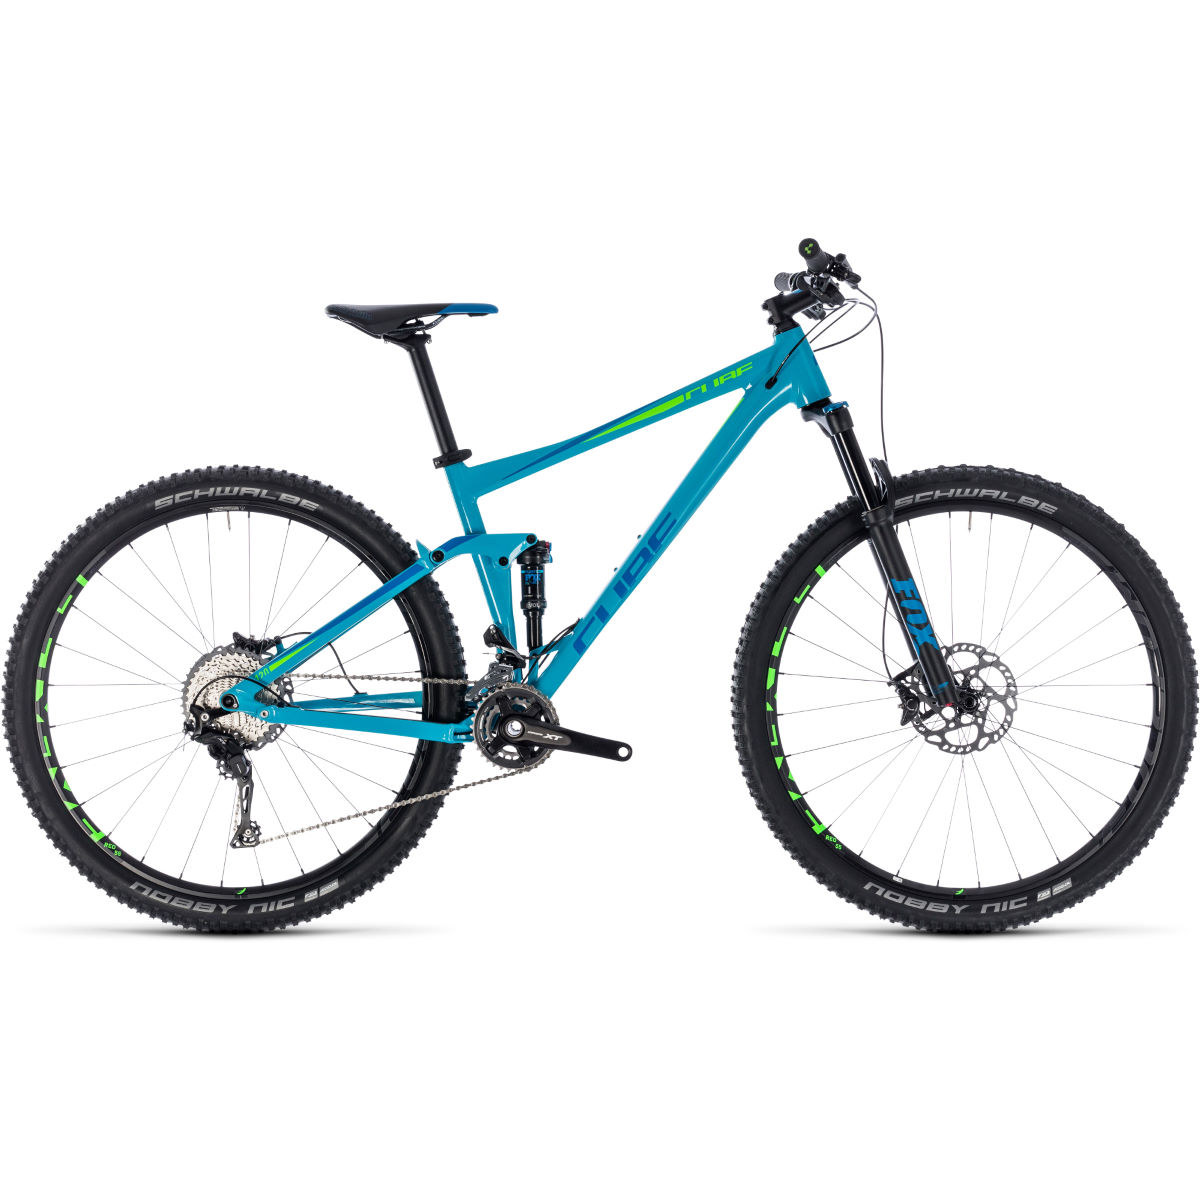 Cube Stereo 120 Race 29 Suspension Bike (2018) - Bicicletas de MTB de doble suspensión